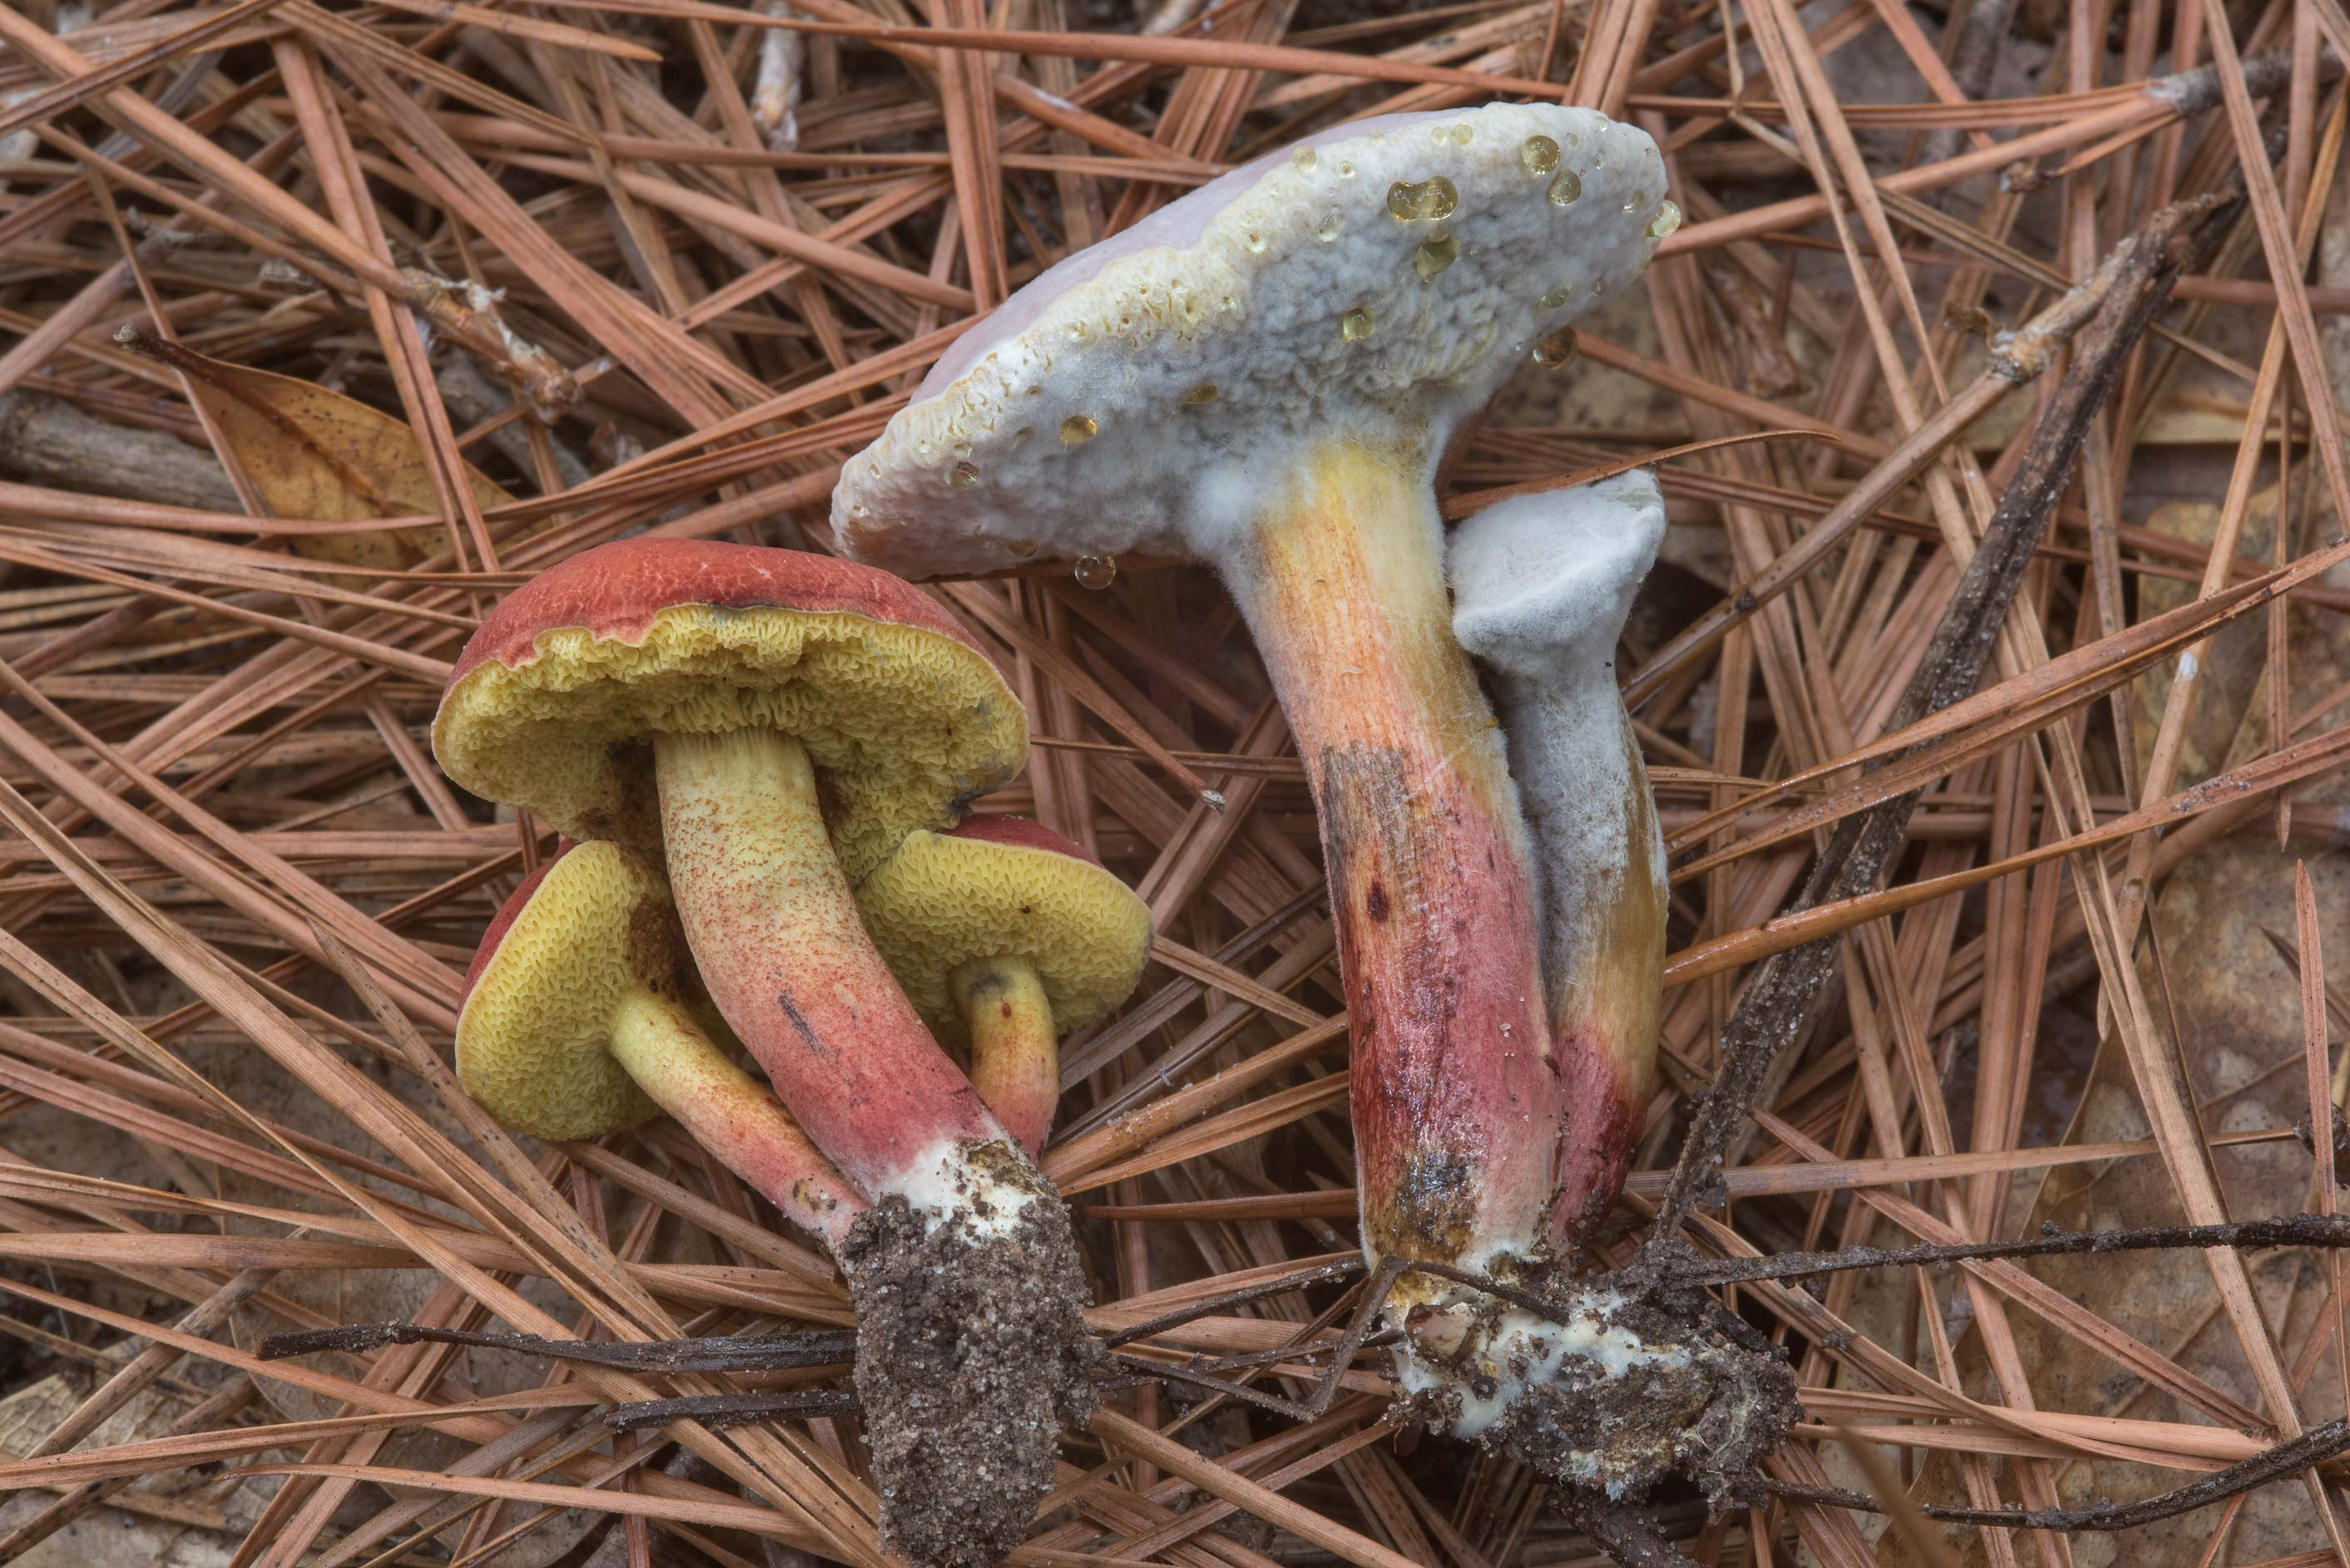 Small bolete mushrooms Hortiboletus rubellus with...National Forest near Huntsville, Texas